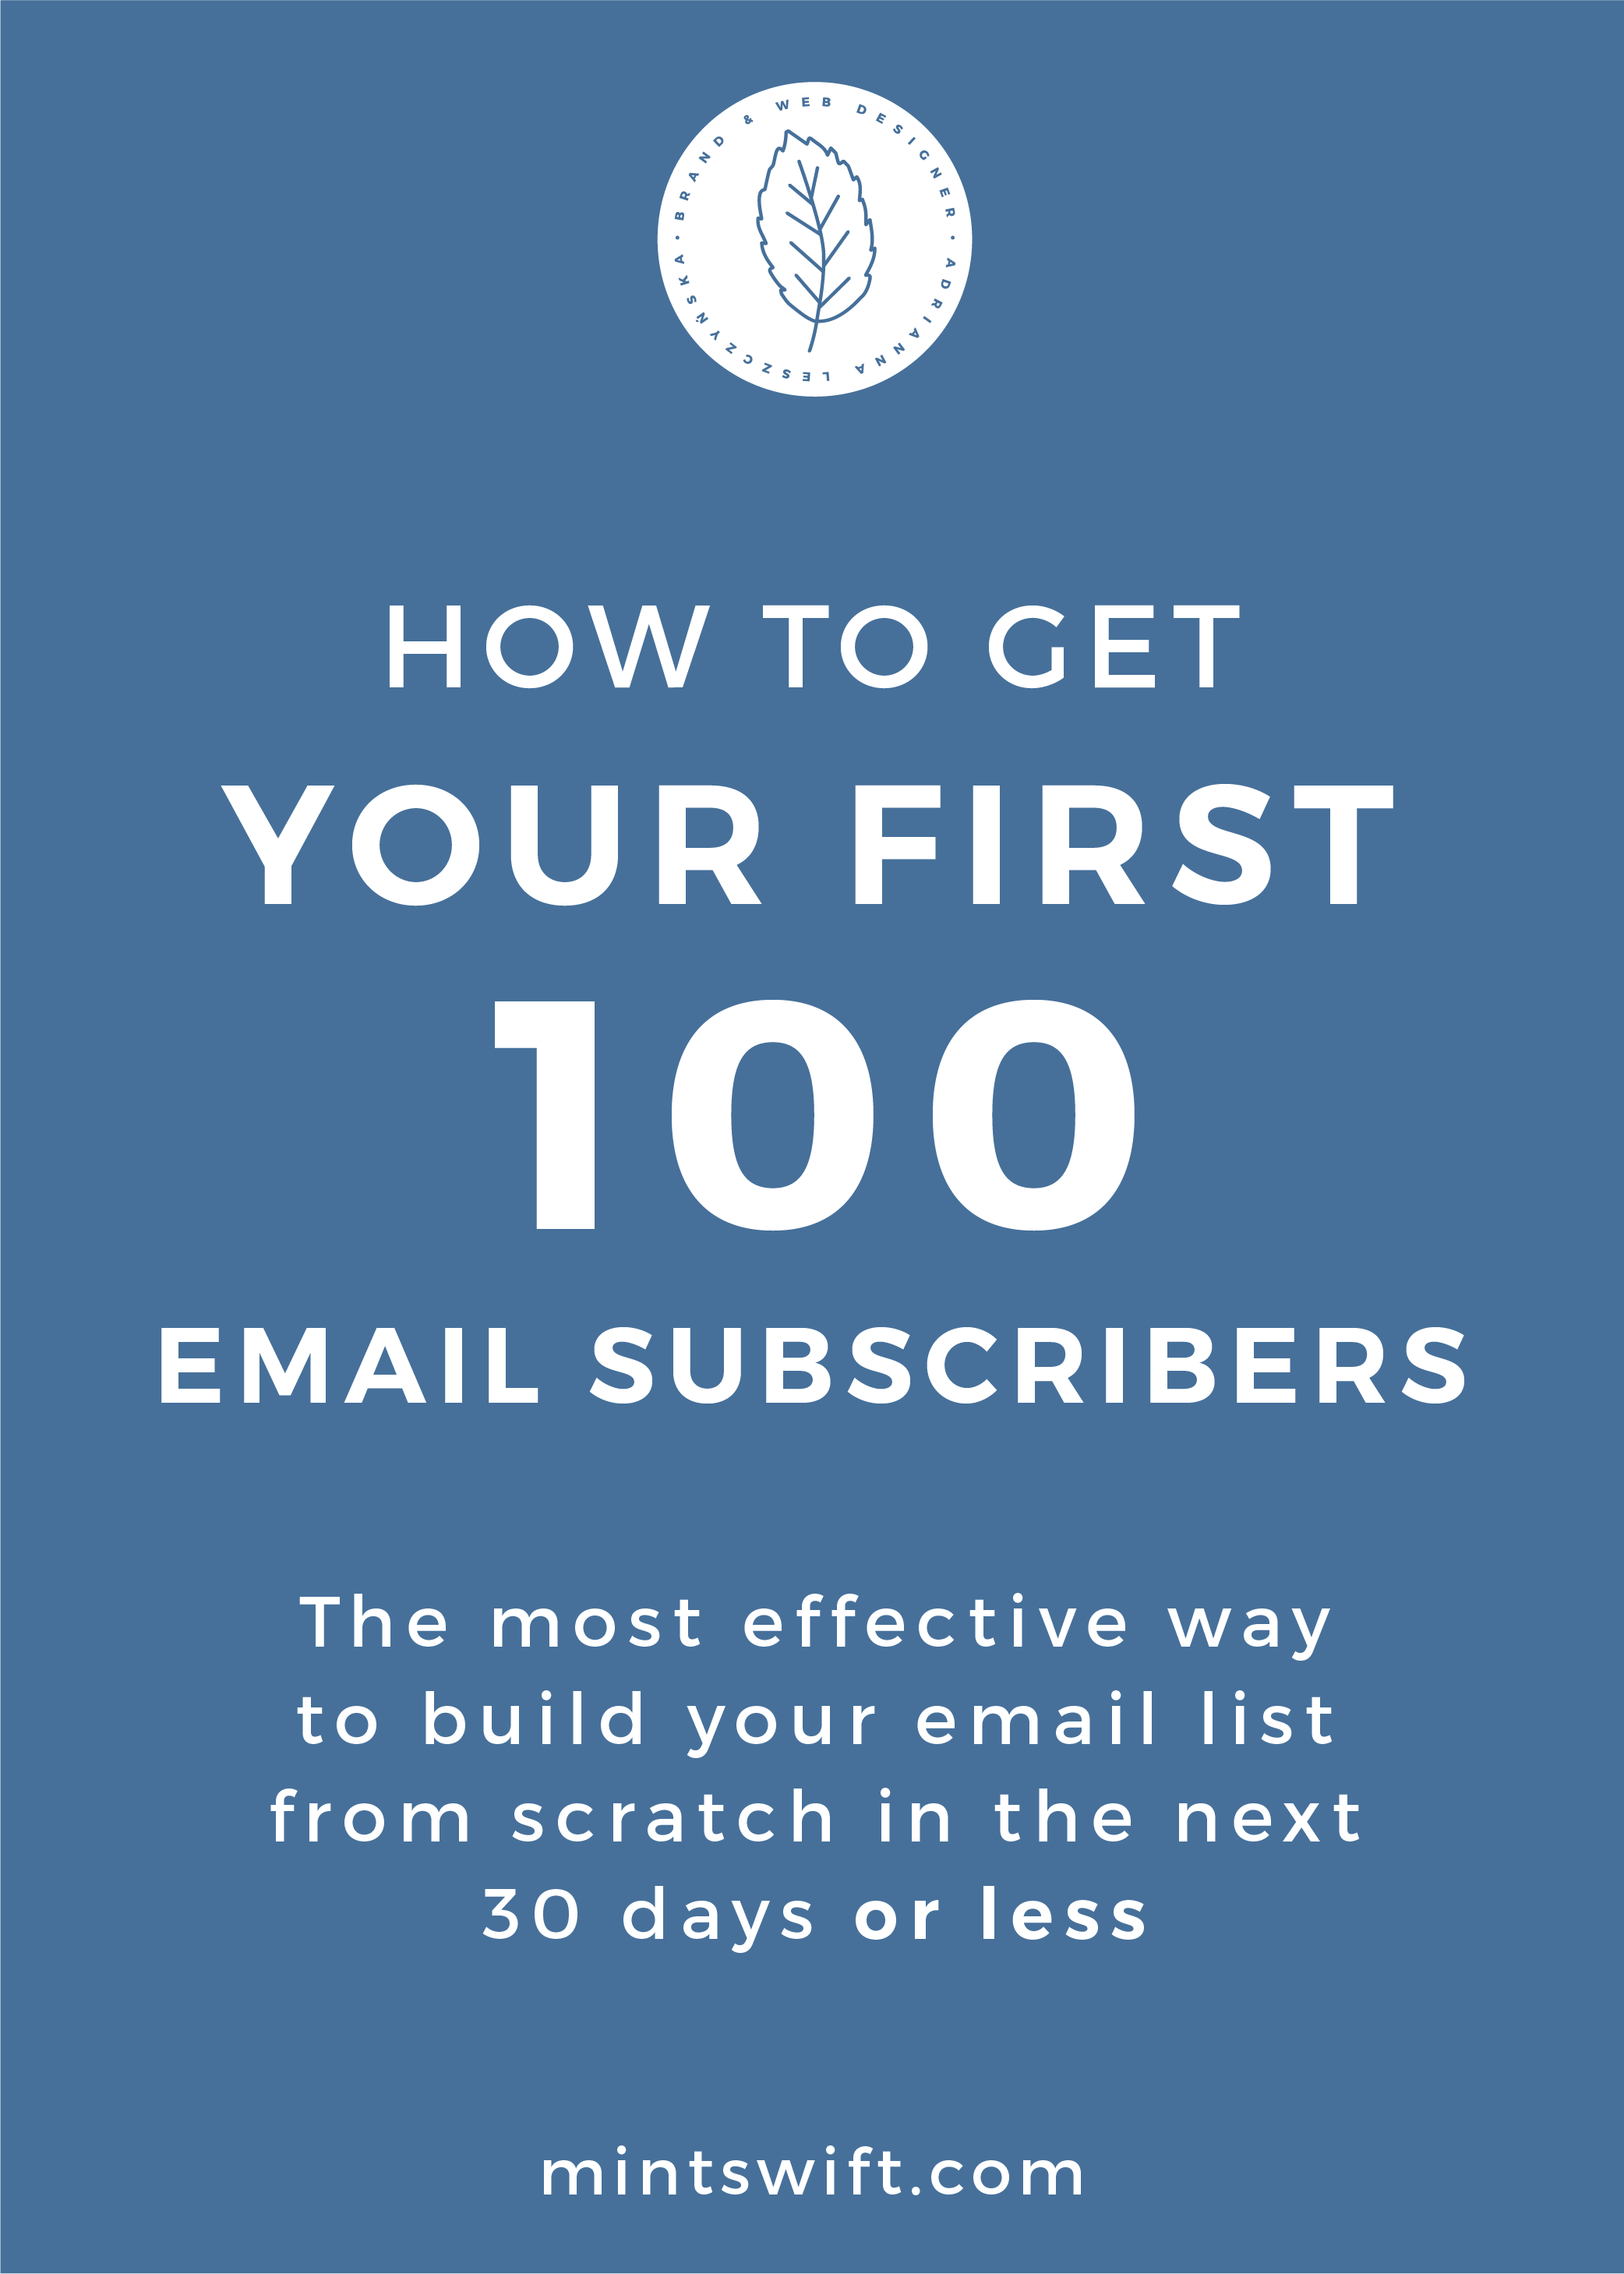 How to Get Your First 100 Email Subscribers. The Most Effective Way to Build Your Email List from Scratch in The Next 30 Days or Less - MintSwift